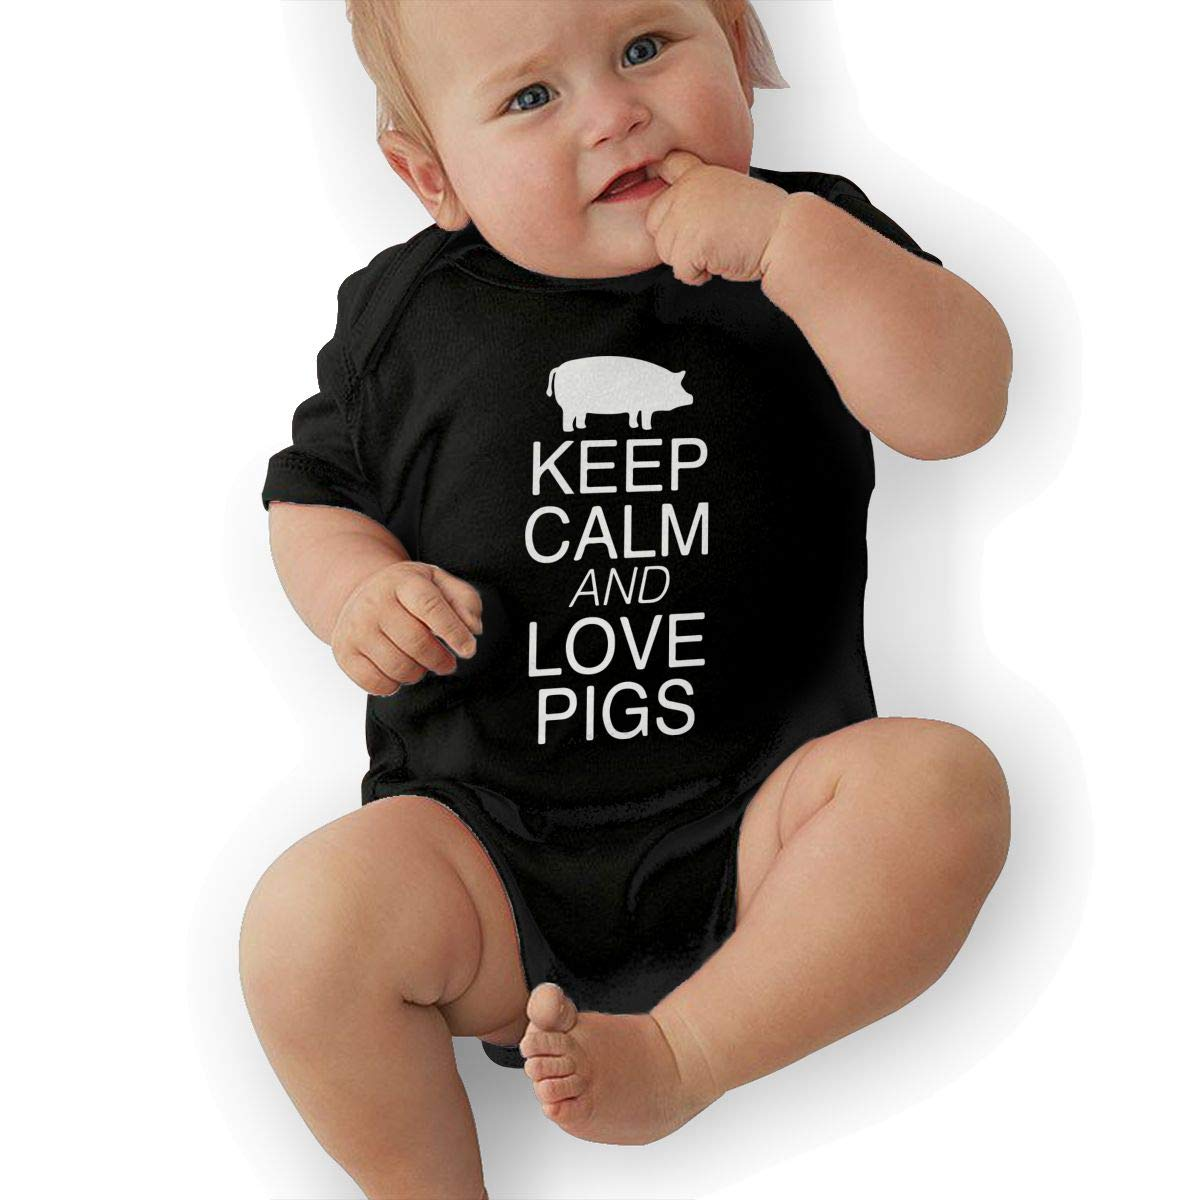 Keep Calm and Love Pigs Printed Unisex Baby Short Sleeve Bodysuits Coverall Jumpsuit